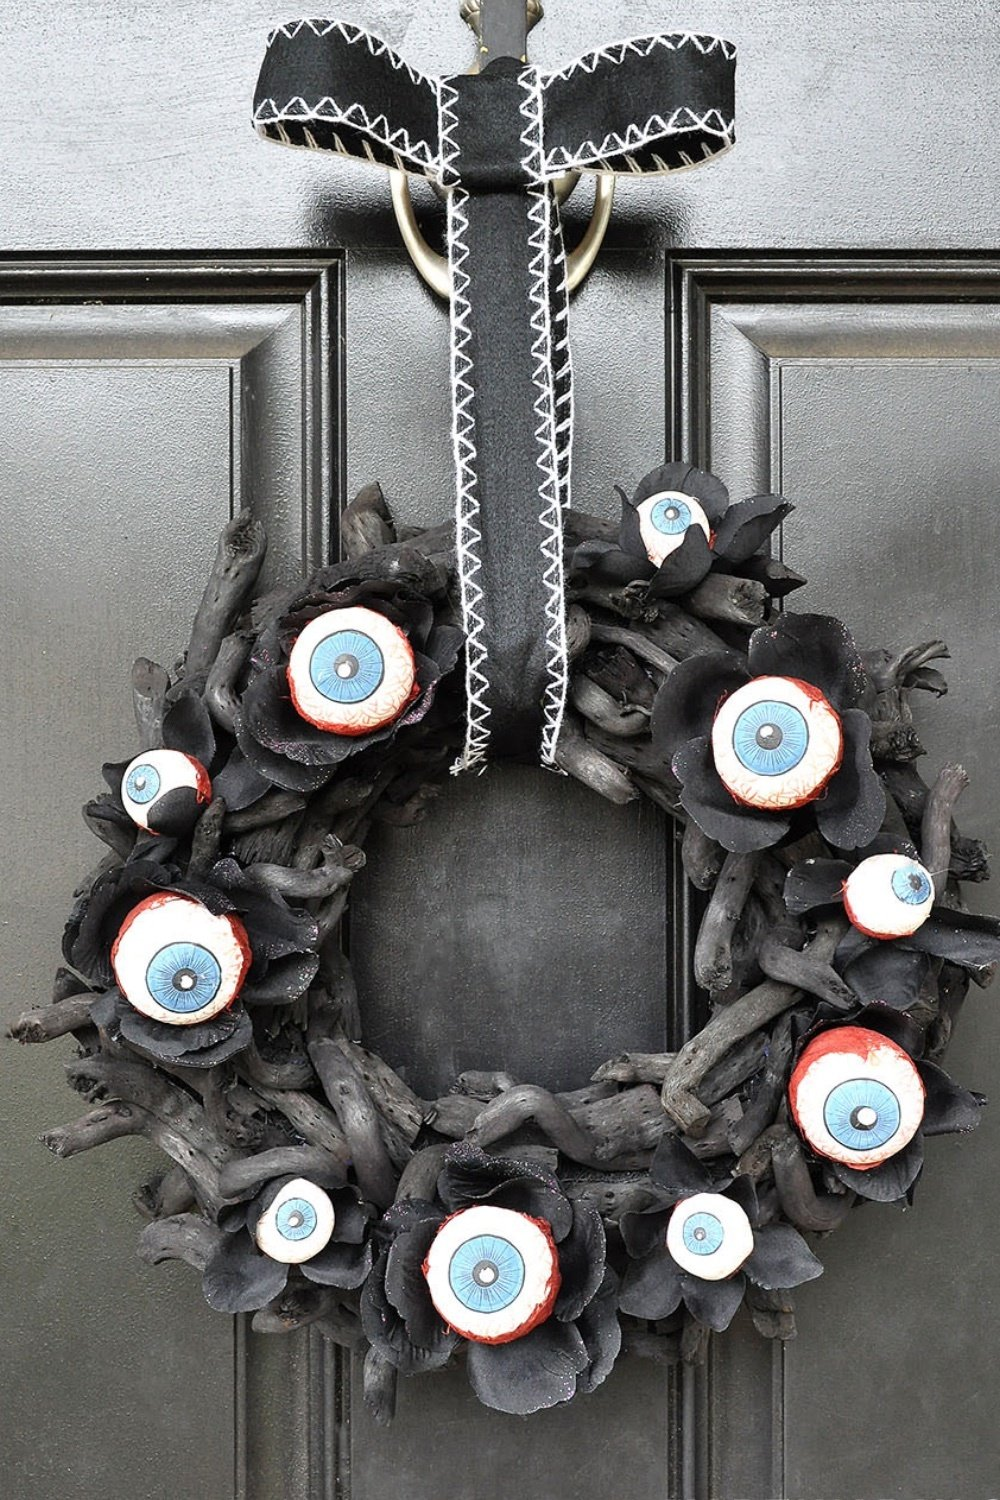 Horrifying Eyeball Wreath & Pumpkin Man Halloween Decor